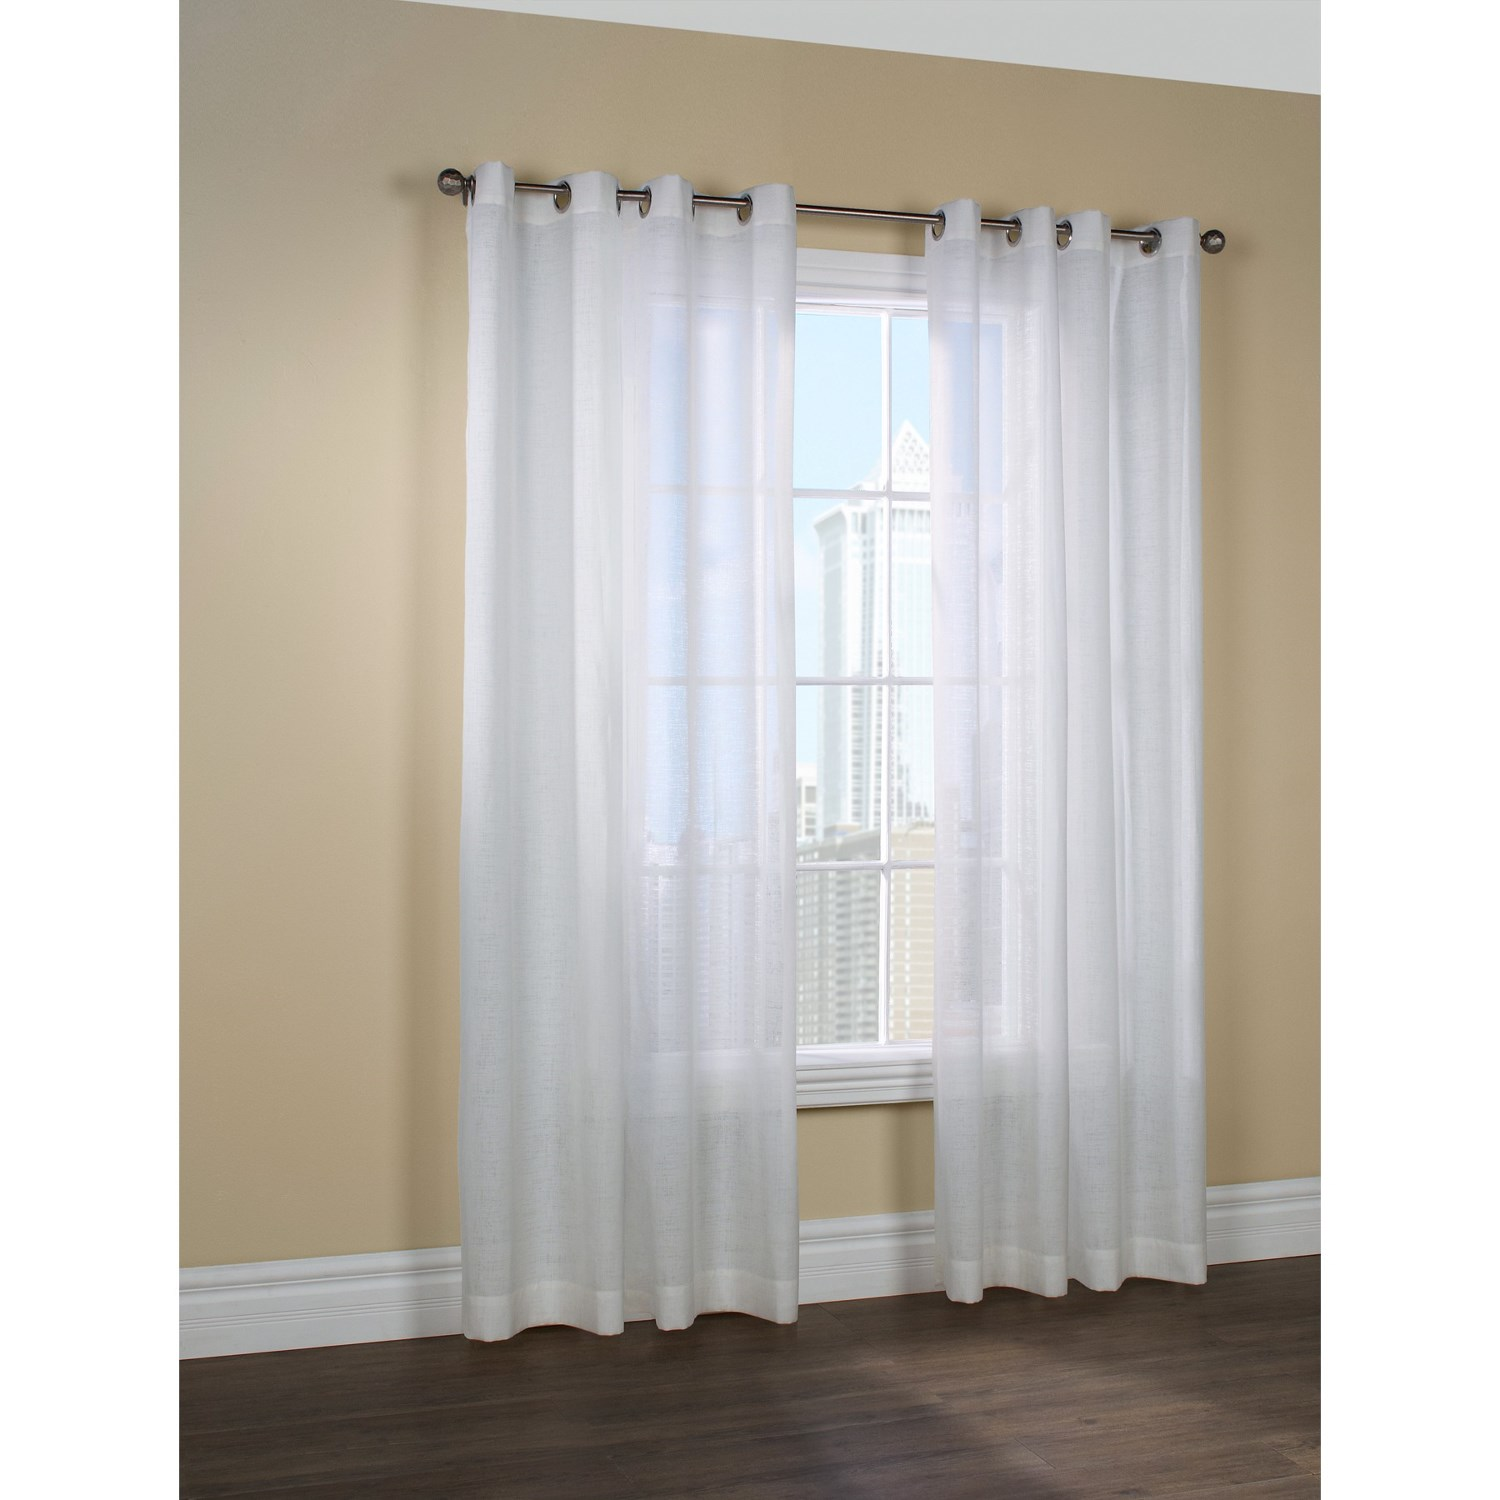 Pin sheer curtains semi white lace sheers window on pinterest